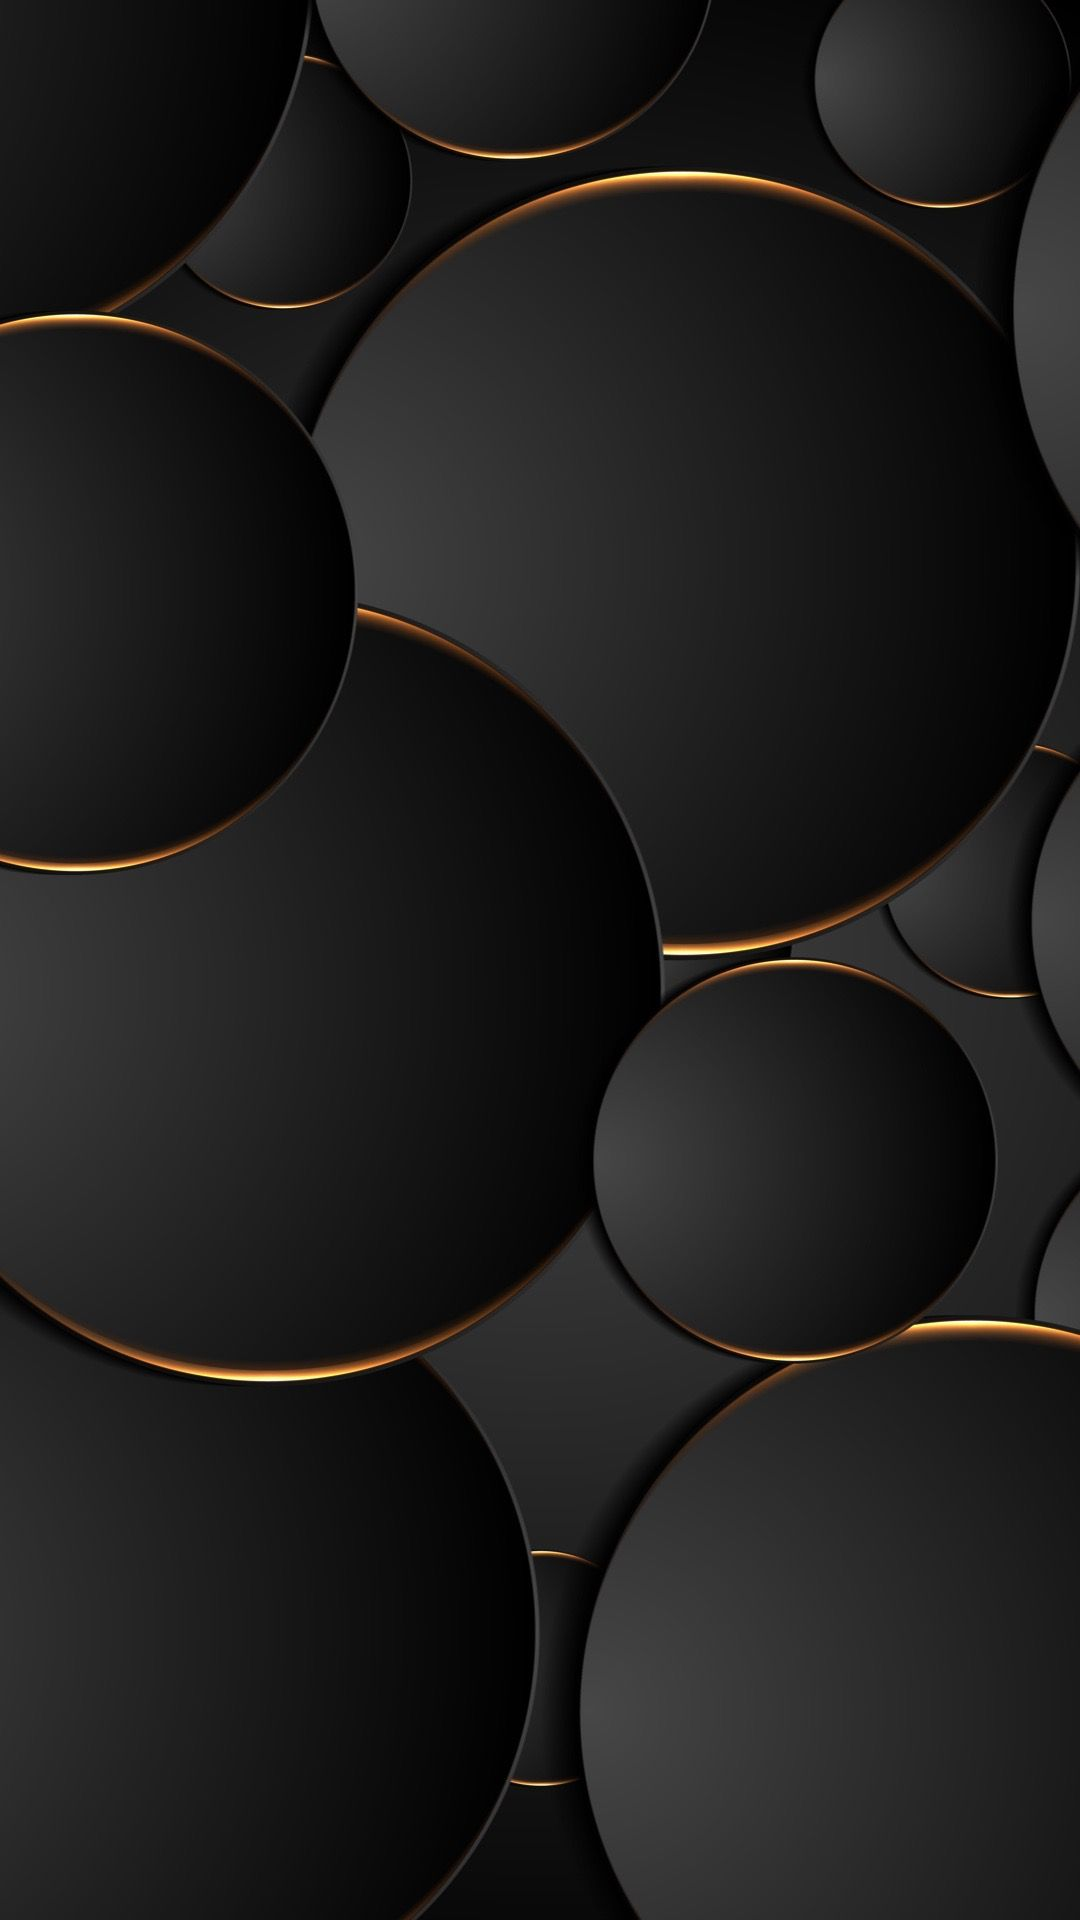 Black 3d Wallpaper For Your Iphone From Everpix Wallpaper Black Wallpaper Iphone 3d Wallpaper Black 3d Wallpaper